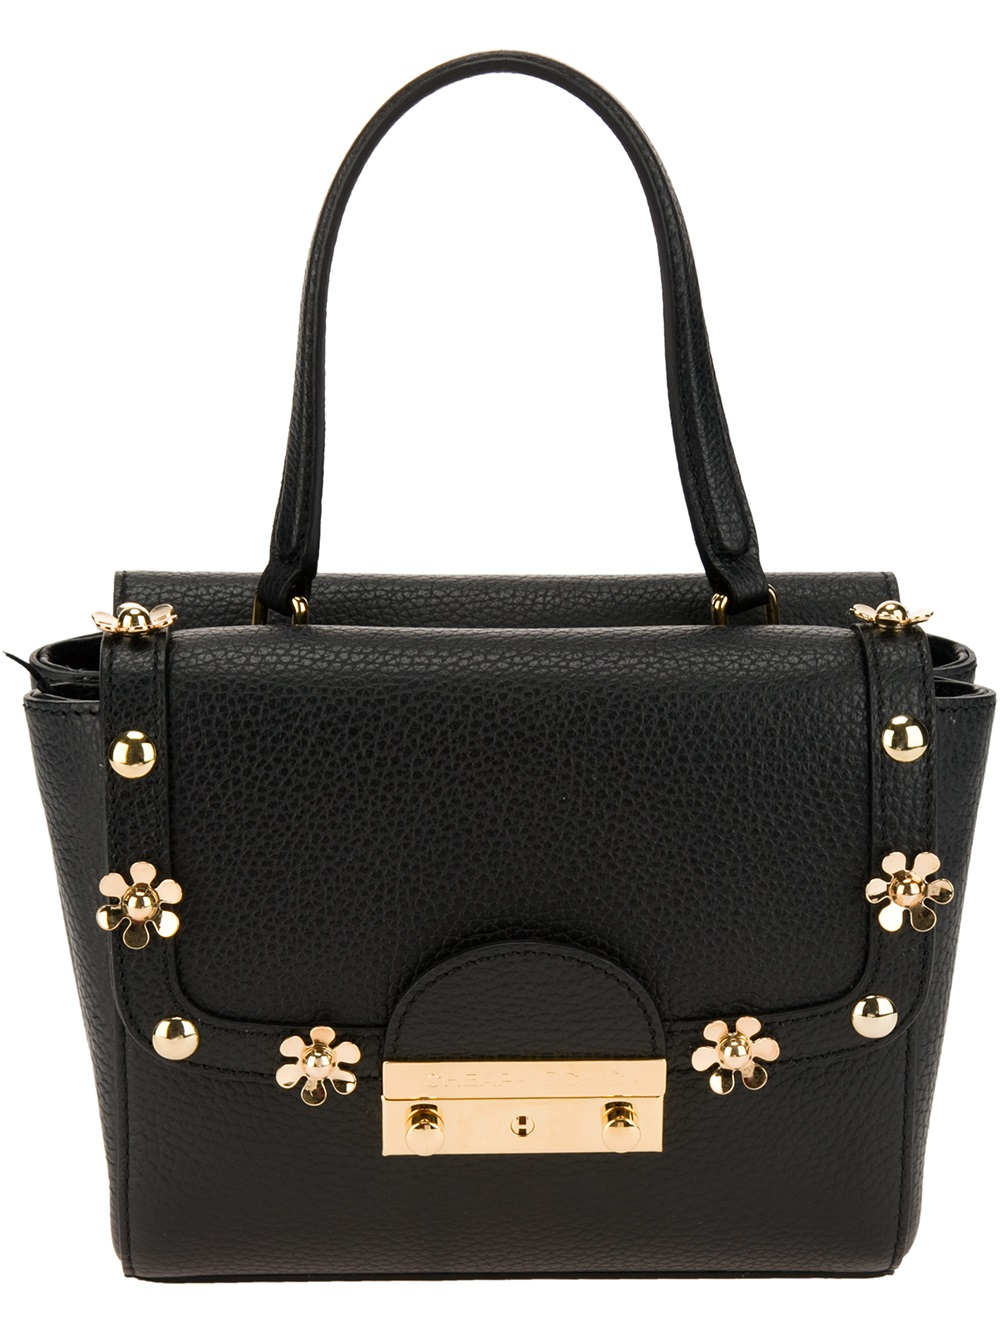 Moschino cheap chic floral studded shoulder bag in black Inexpensive chic